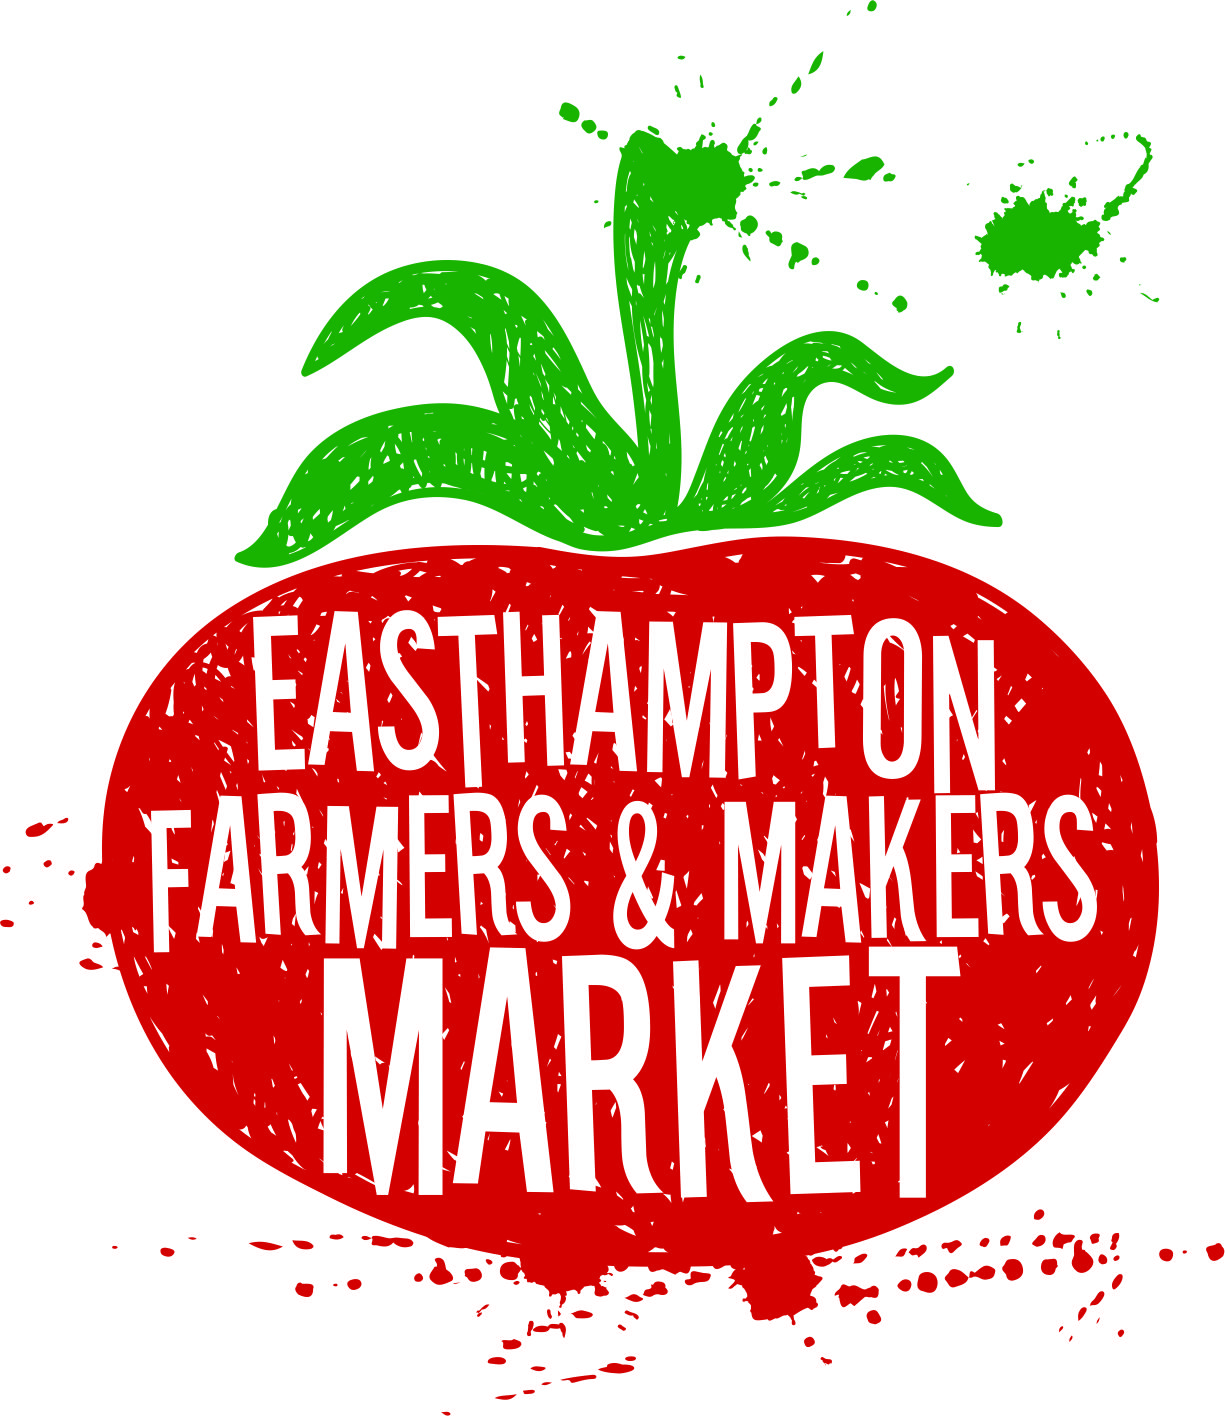 Easthampton Farmers & Makers Market